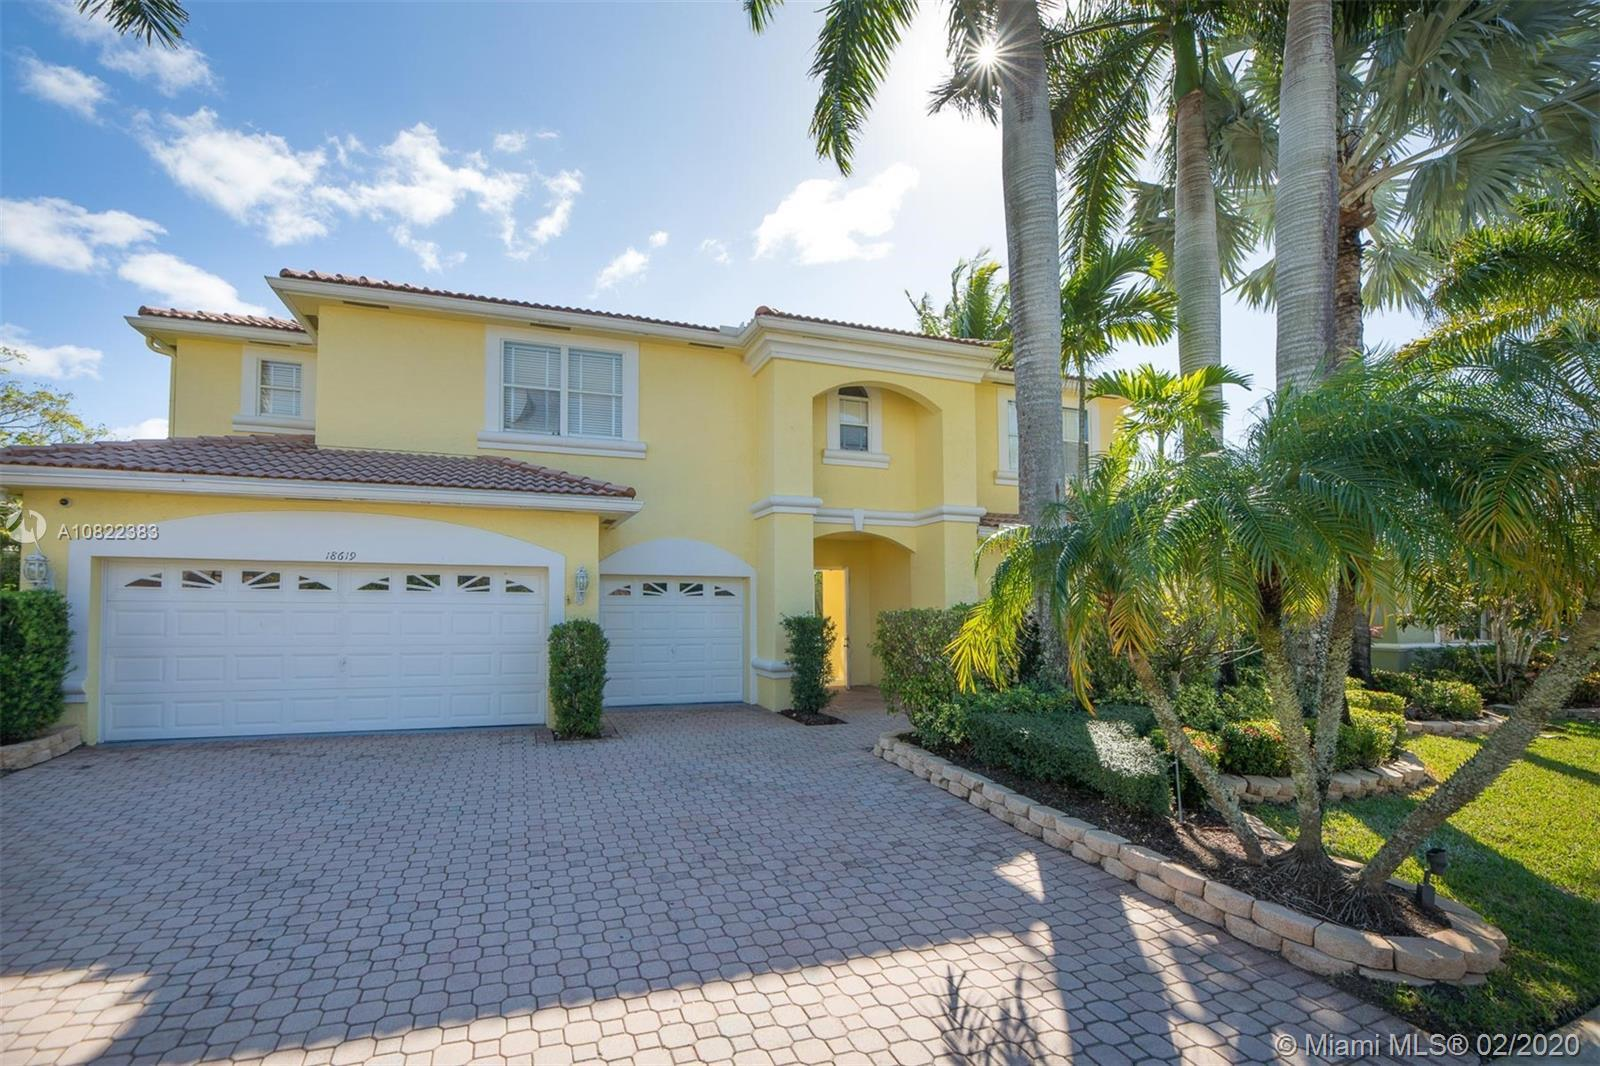 Large two story lakefront pool home with courtyard entrance in gated community. Master bedroom and g